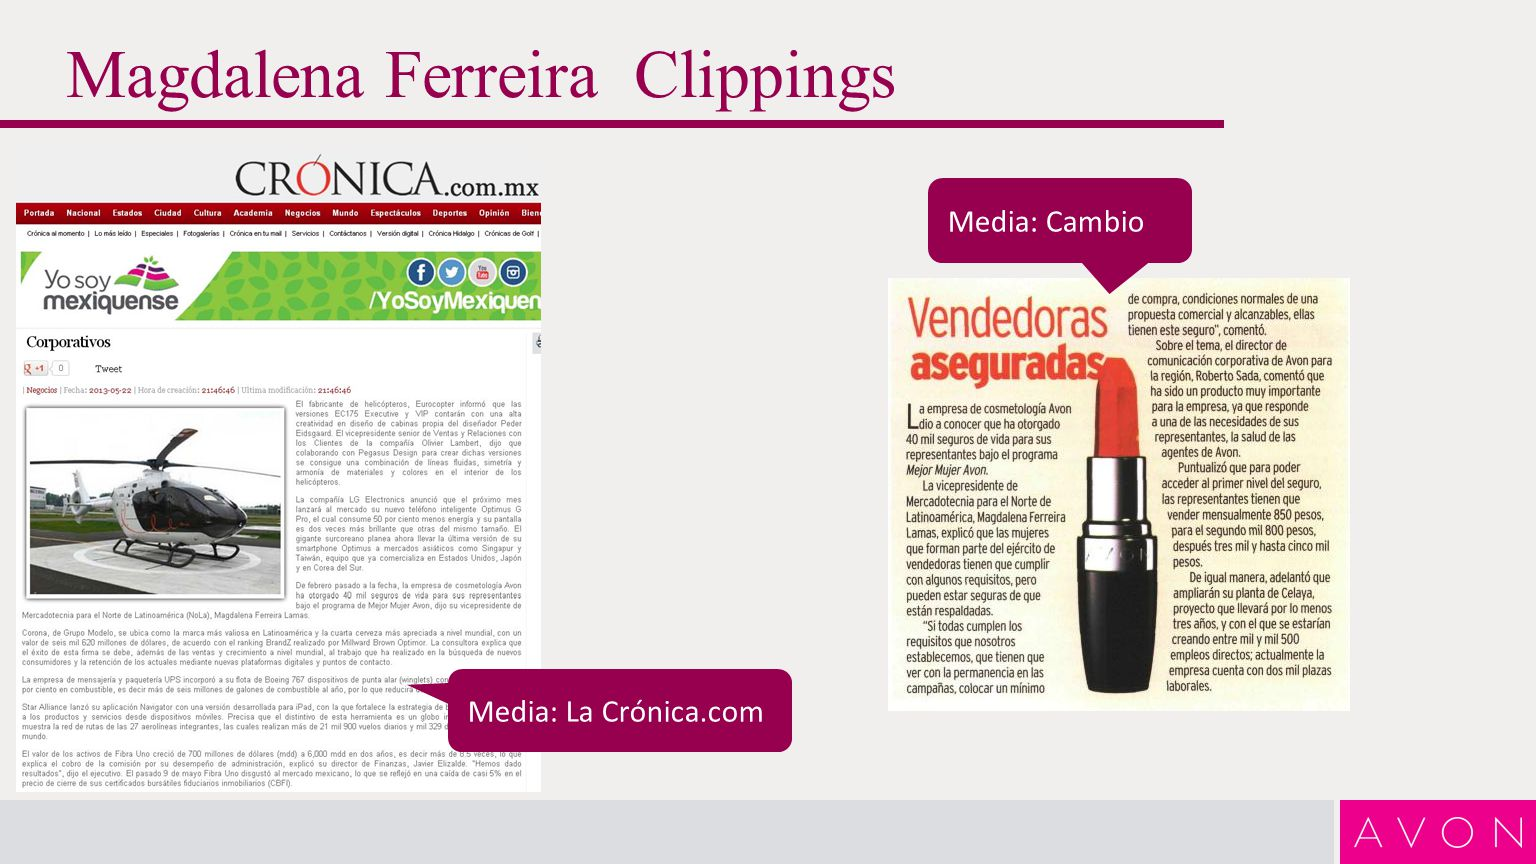 Magdalena Ferreira Clippings Media: La Crónica.com Media: Cambio